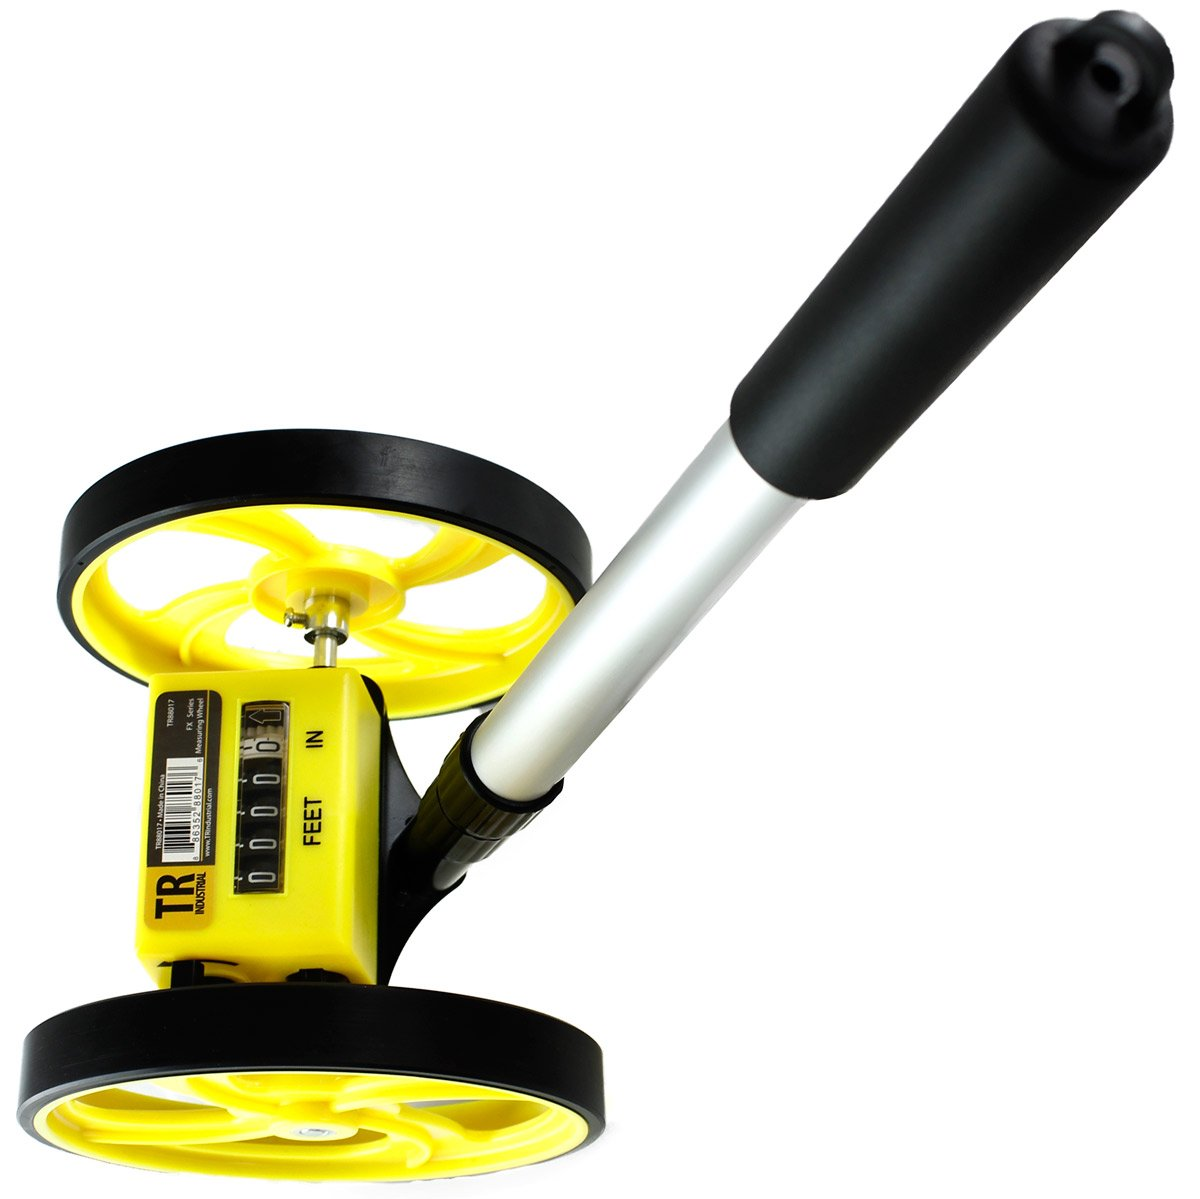 TR Industrial TR88017 FX Series Collapsible Measuring Wheel, Yellow/Black